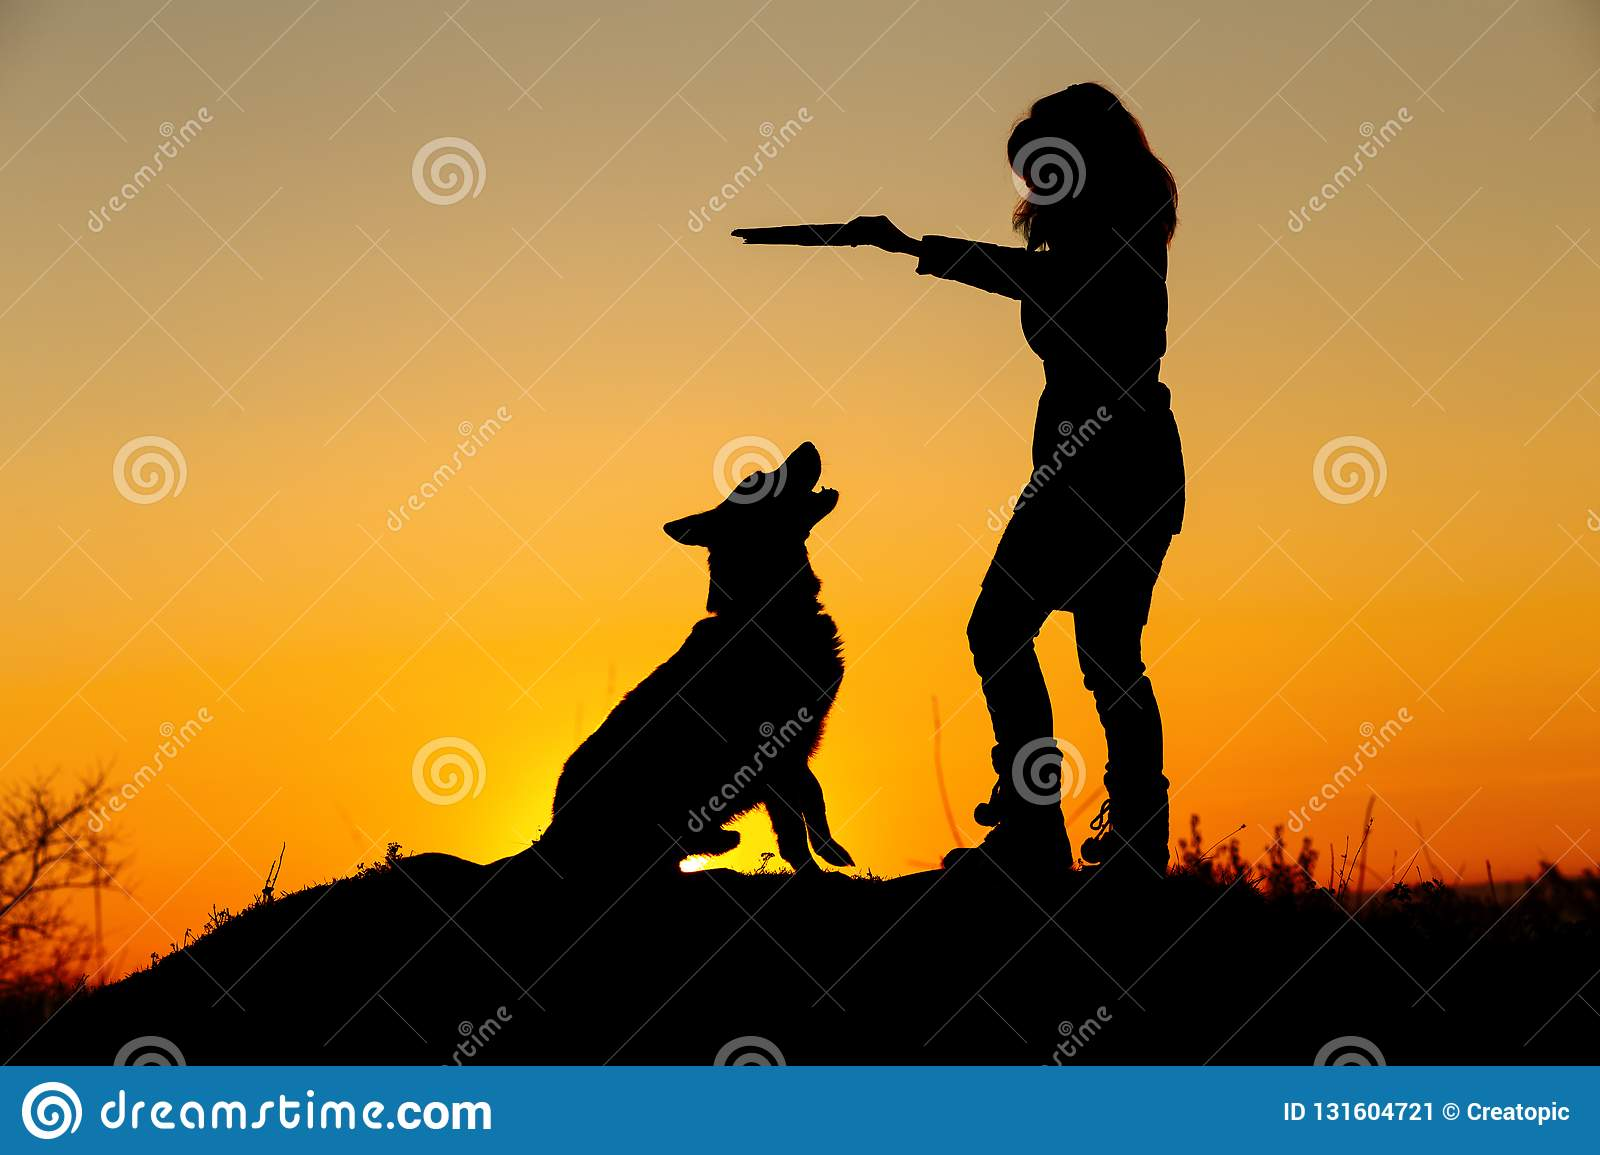 Silhouette woman walking with a dog in the field at sunset, a girl in an autumn jacket playing with pet throwing wooden stick on